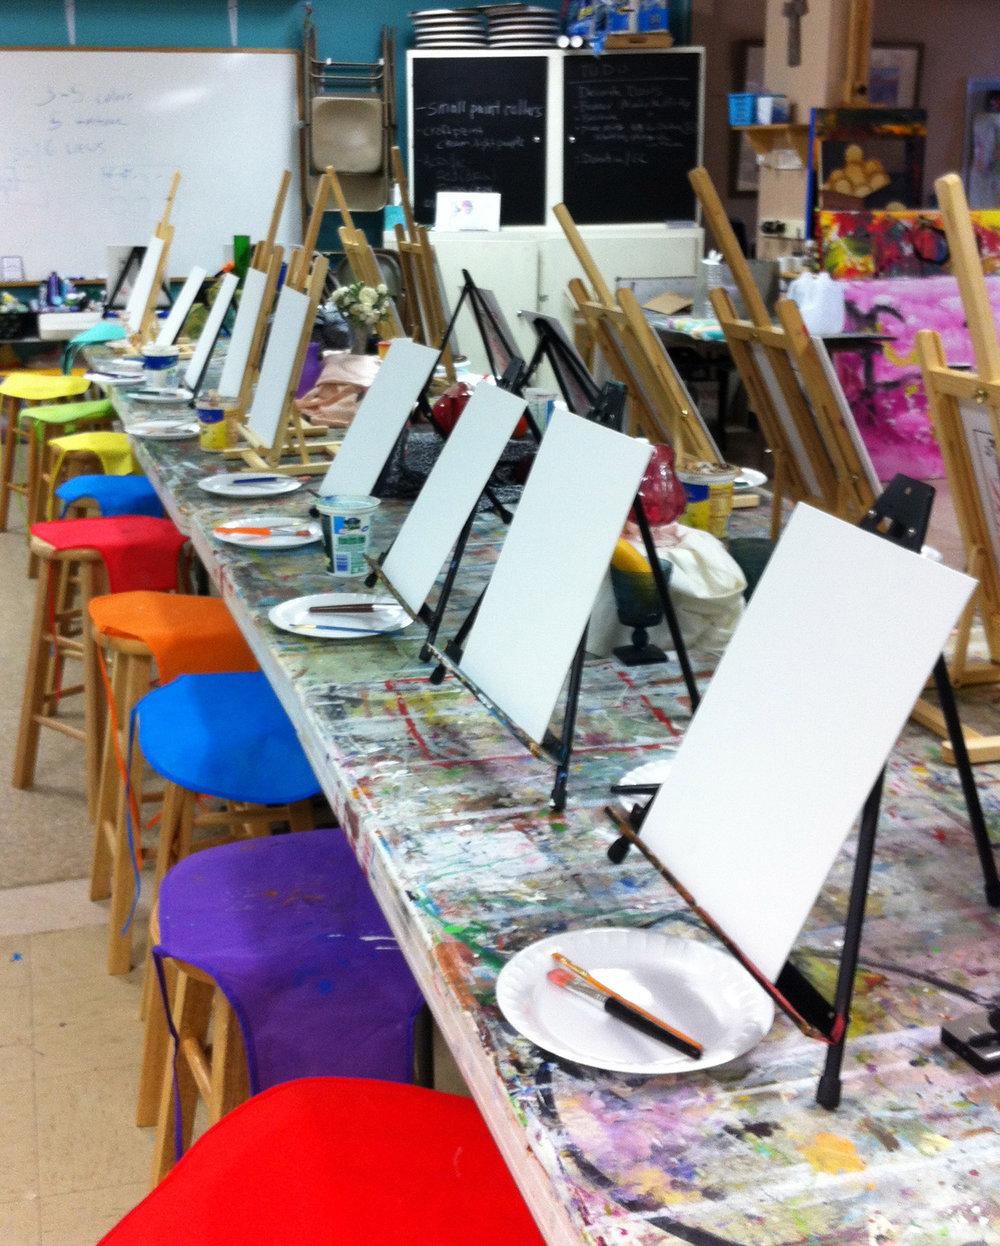 rows-of-easles-set-up-with-colorful-smocks-before-tracey-marshall-art-class-for-childre-2n.jpg